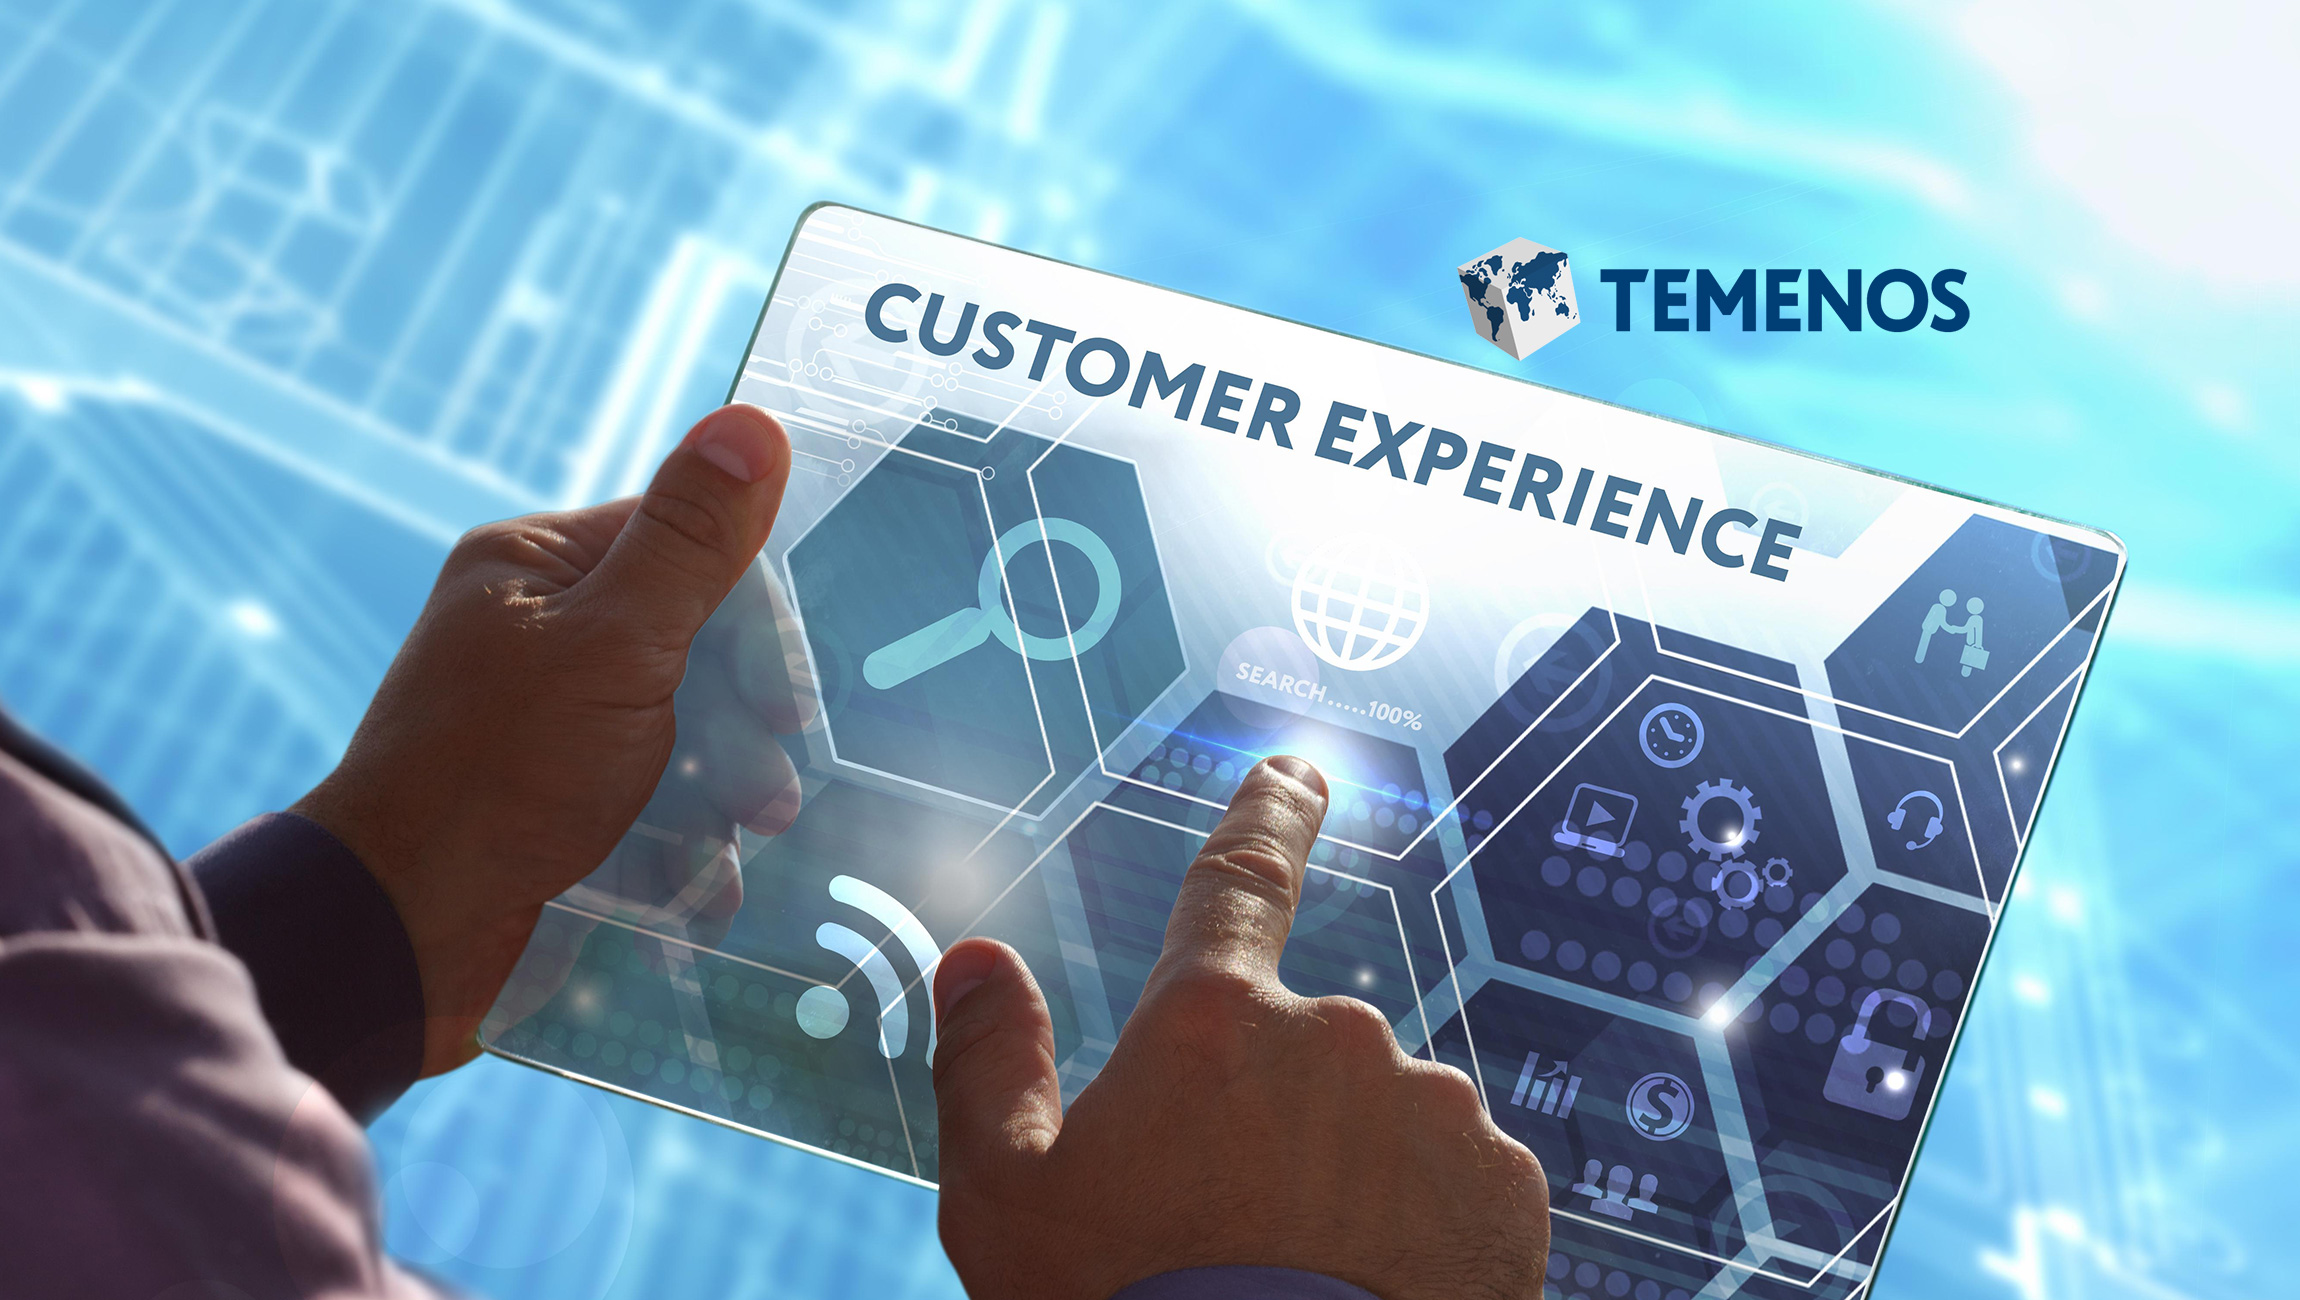 Temenos to offer differentiated digital experience to credit union members